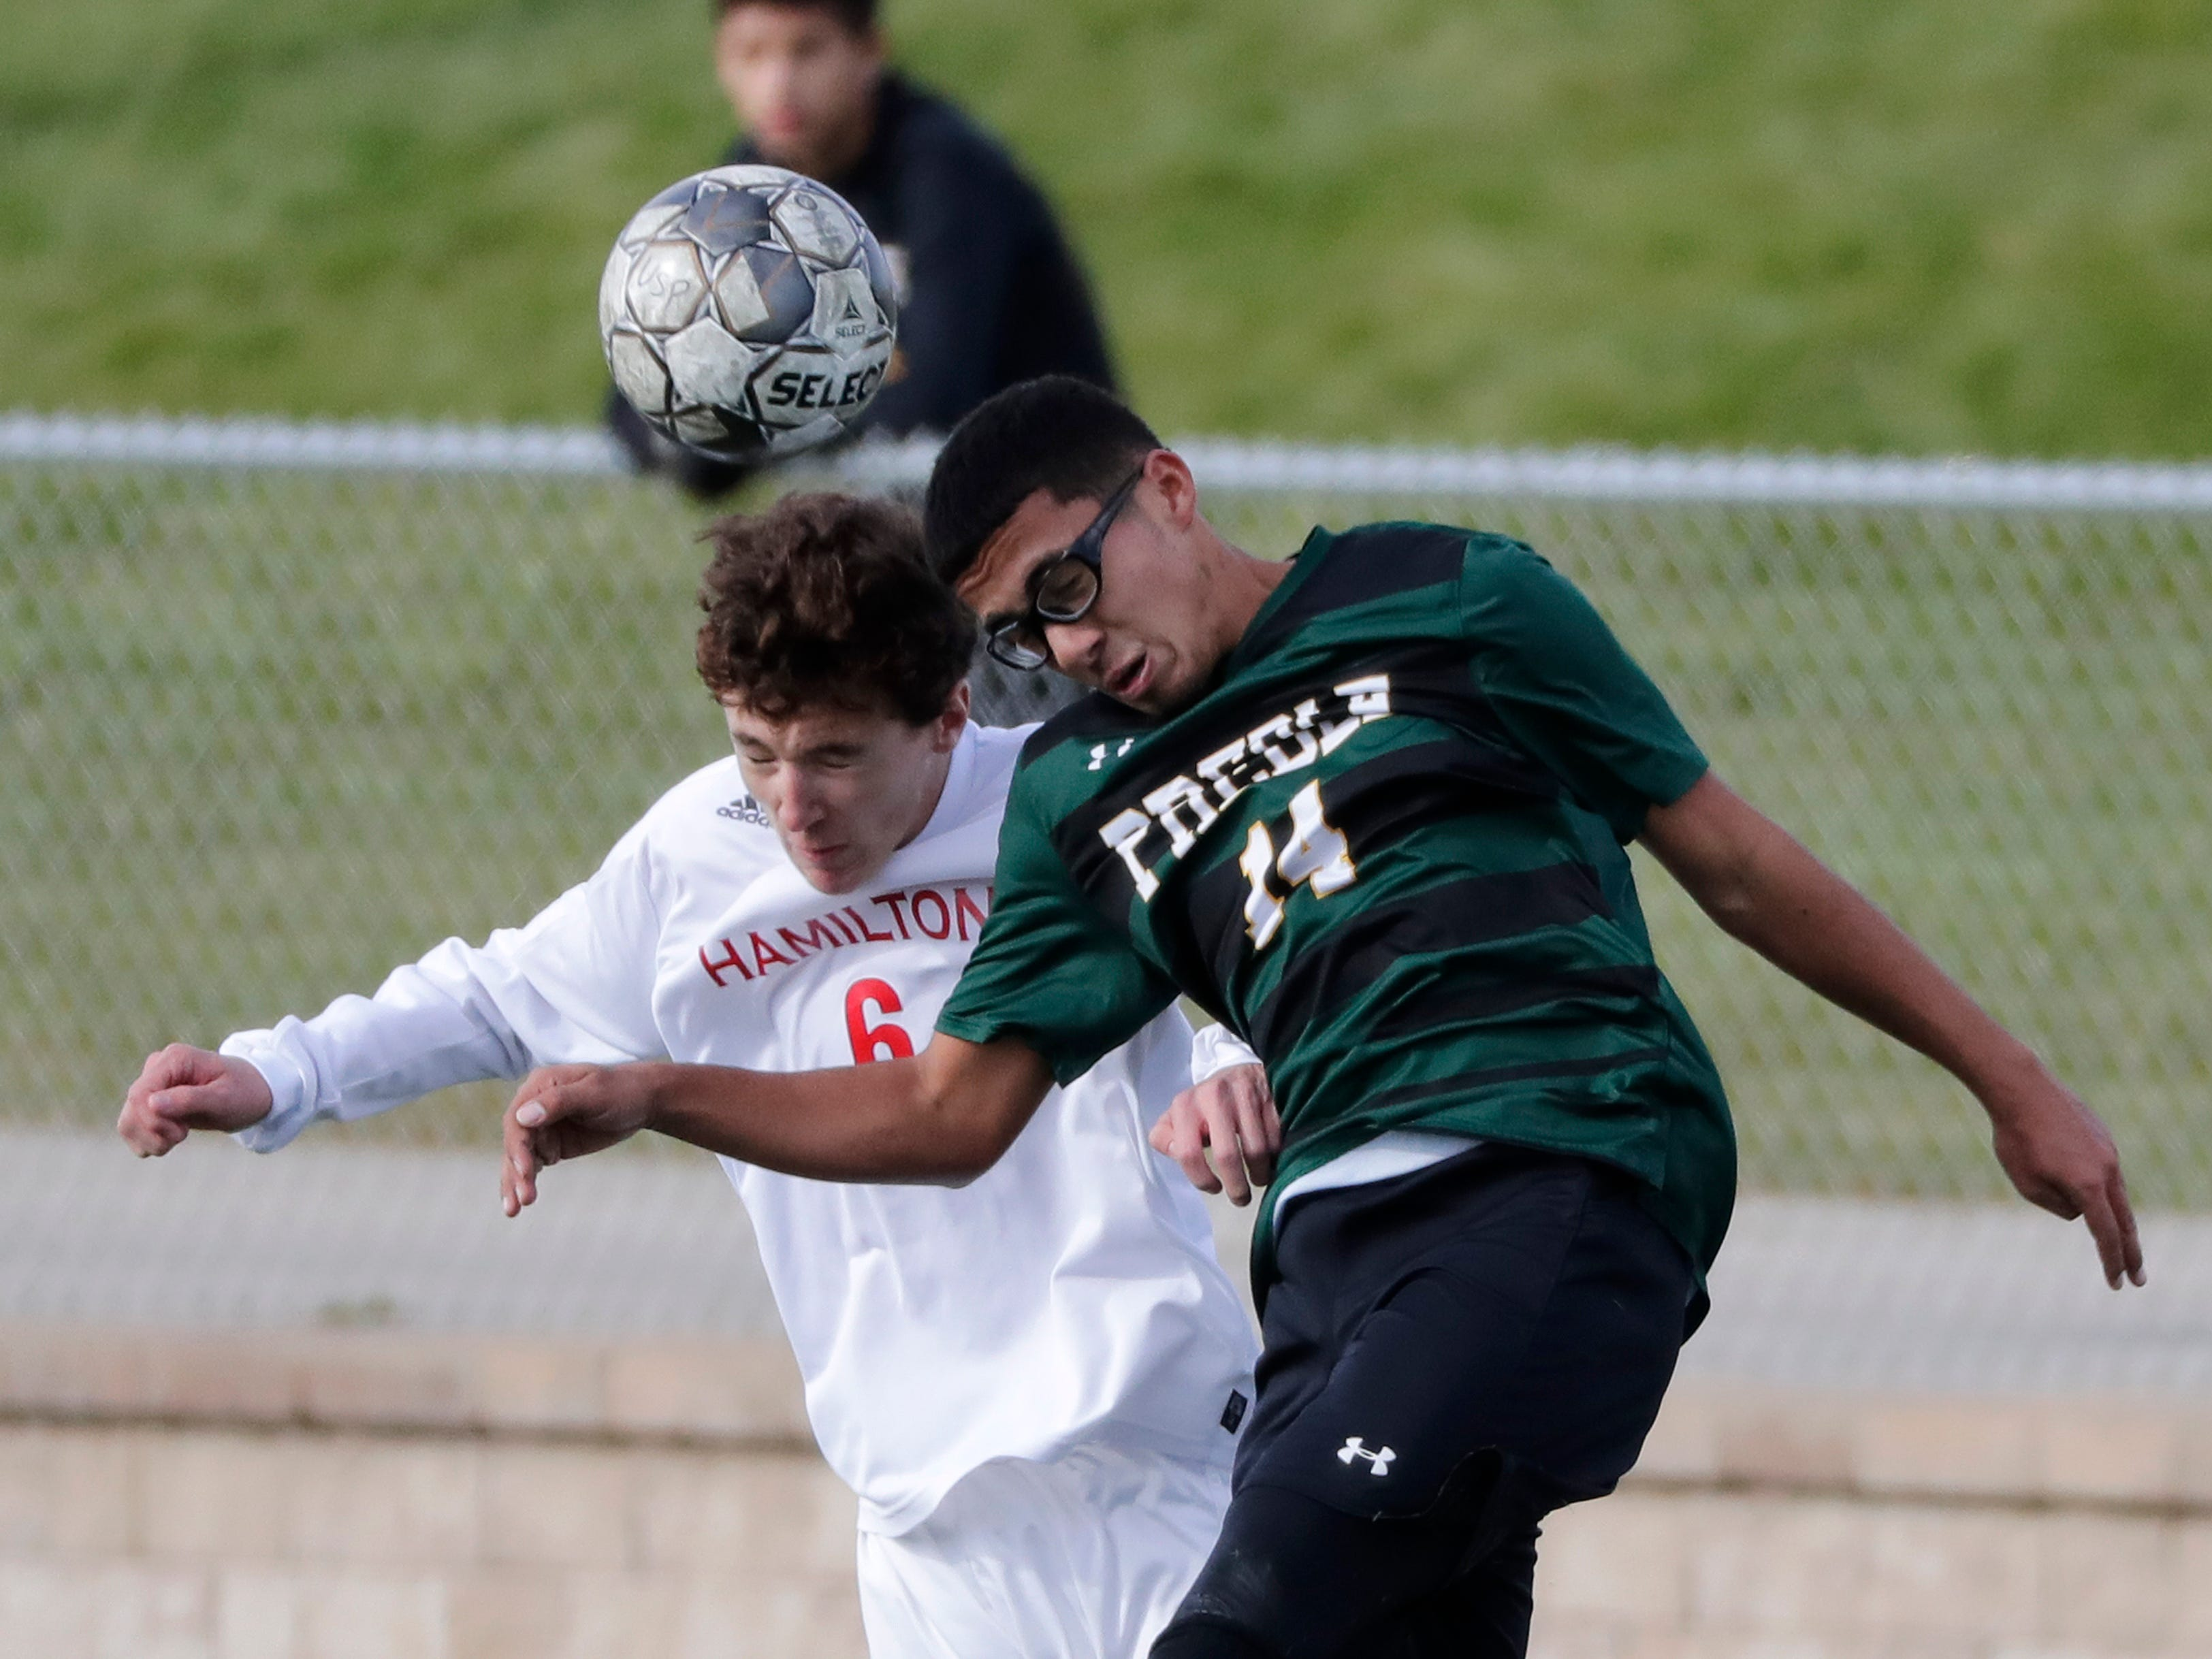 Green Bay Preble High School's Kevin Ramos Sanchez (14) defends against Hamilton High School's Bennett Pauls (6) during their WIAA Division 1 state semifinal boys soccer game Friday, November 2, 2018, at Uihlein Soccer Park in Milwaukee, Wis.